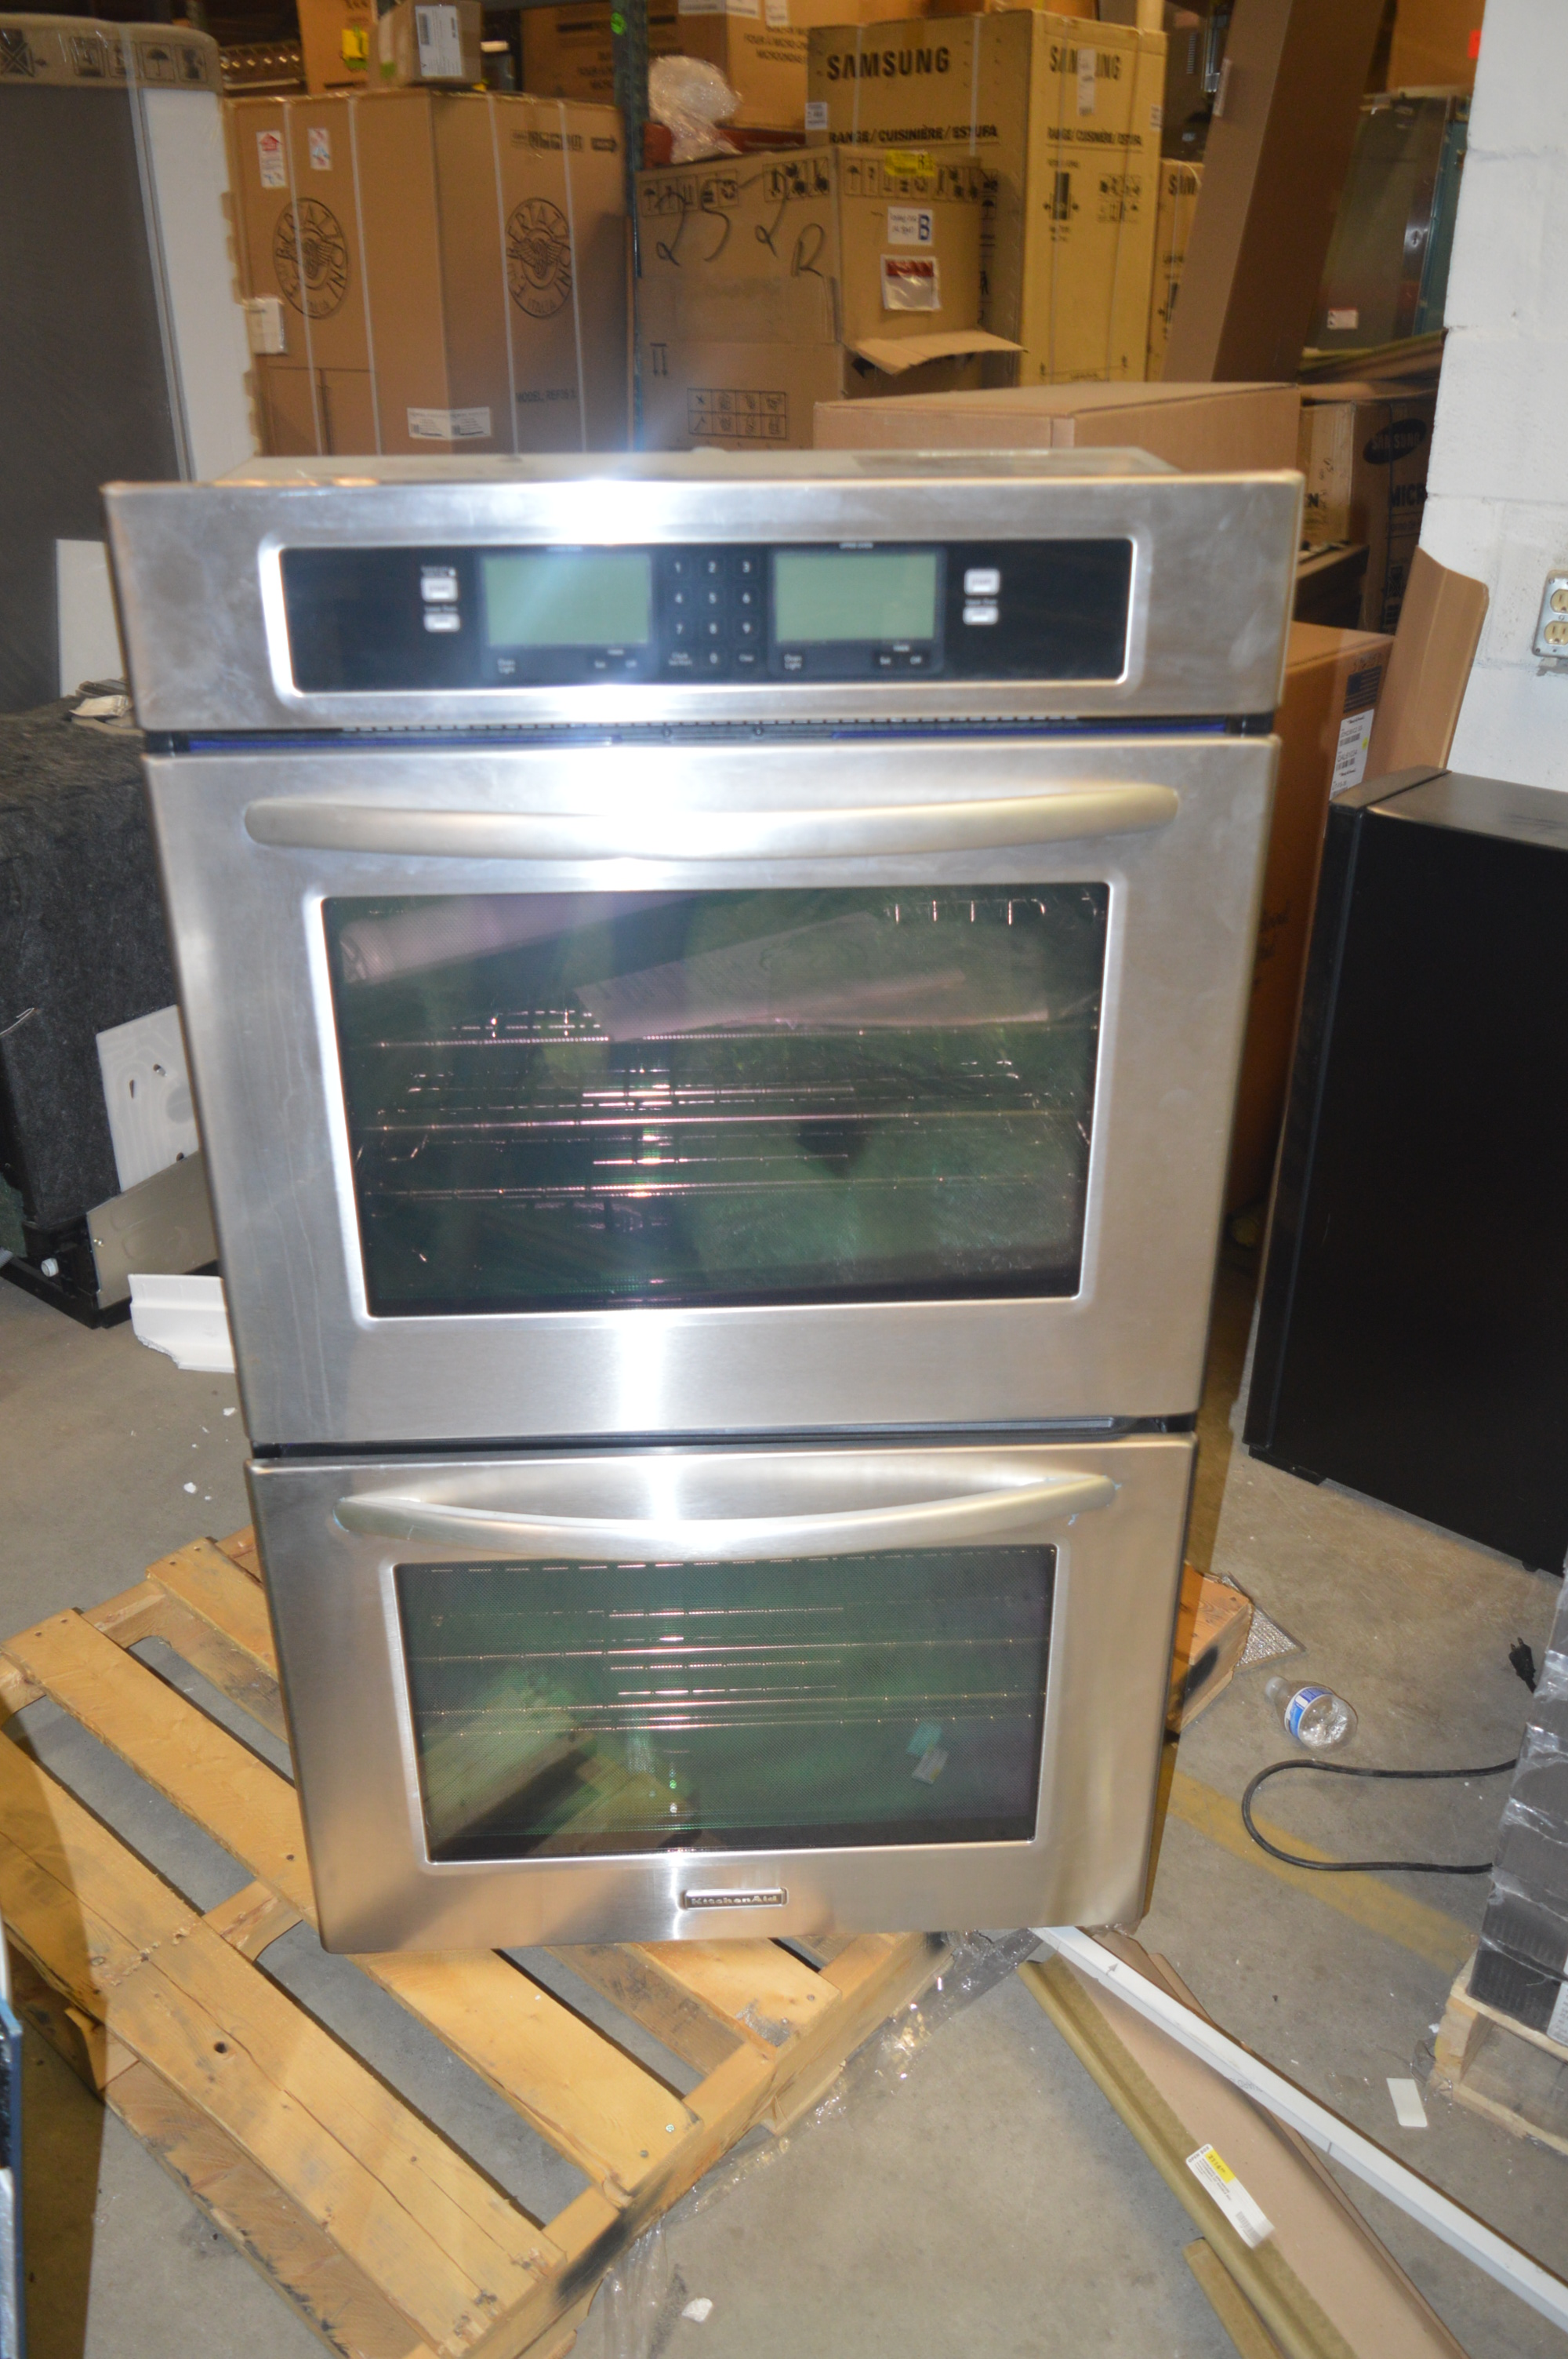 Etonnant Image Is Loading KitchenAid KEBU208SSS 30 034 Stainless Built In Convection